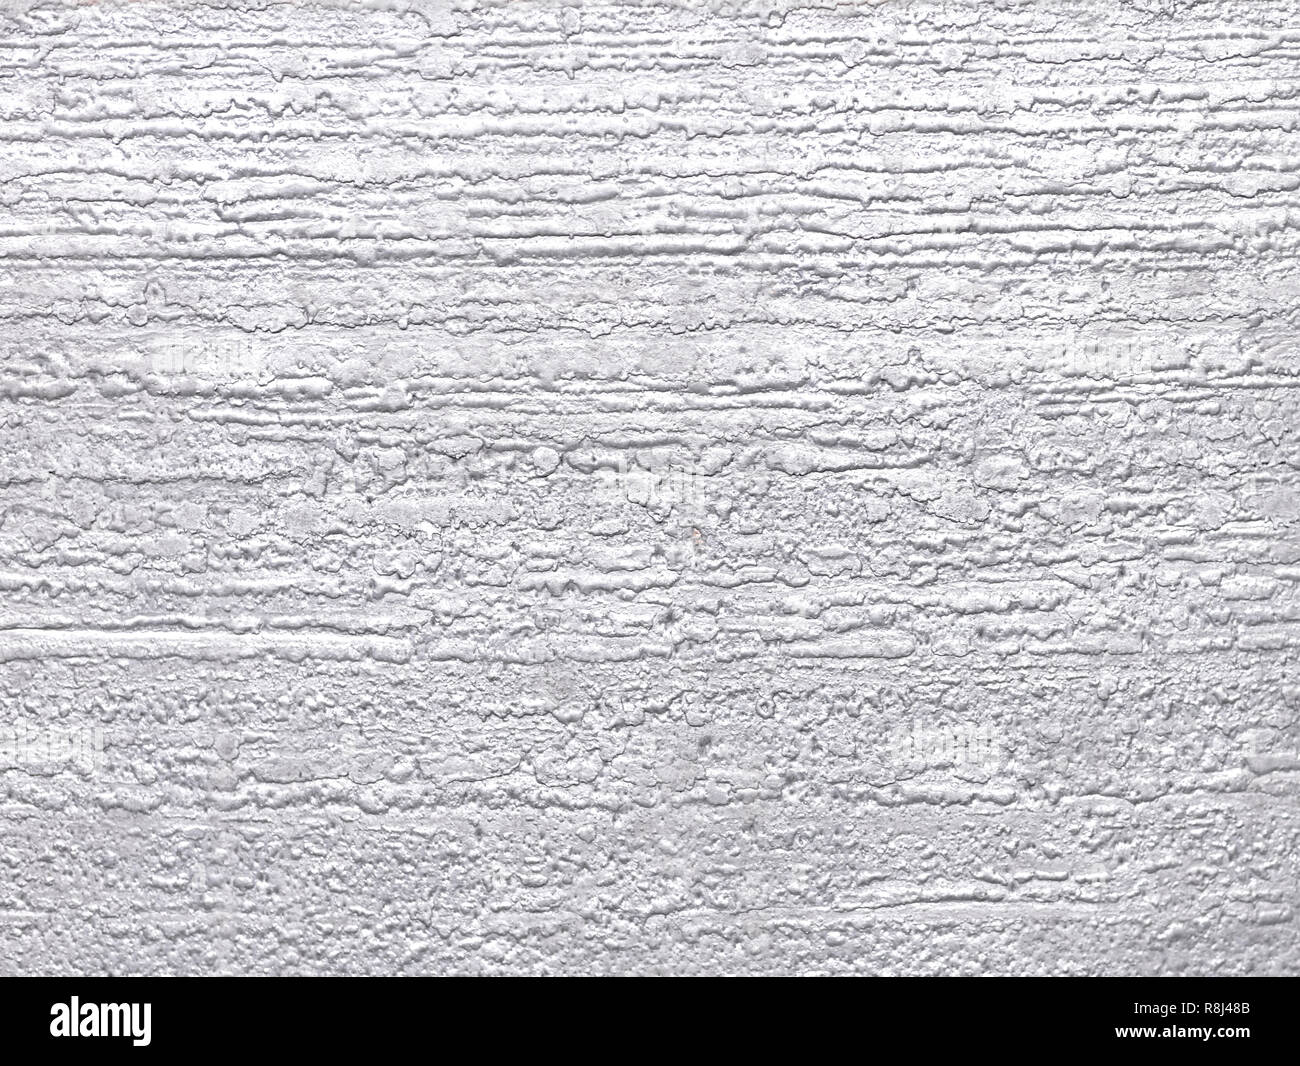 aluminum background with texture showing big slab surface after melting Stock Photo